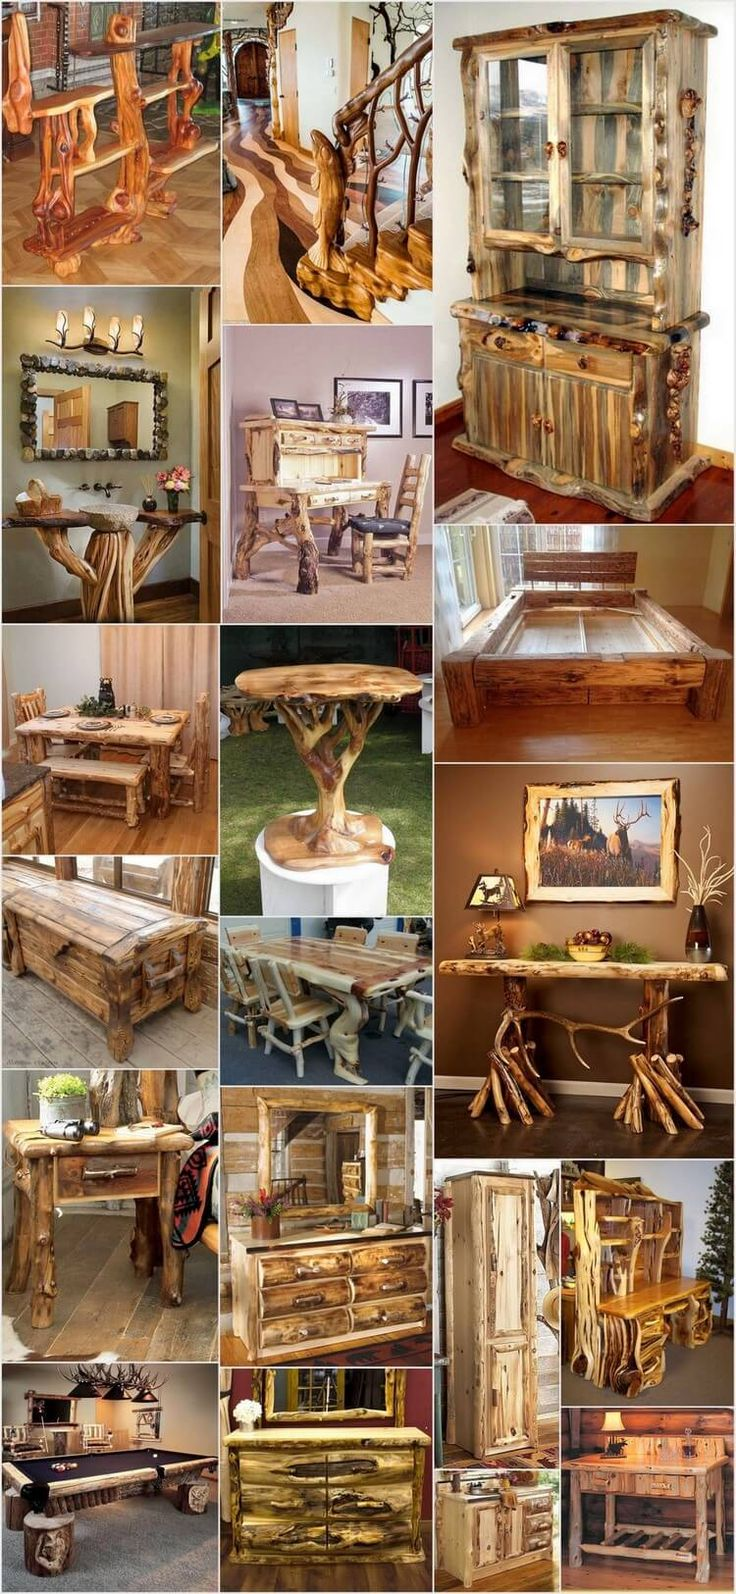 Addition union furniture pany antiques likewise union furniture pany - Innovative Rustic Furniture Decorating Ideas